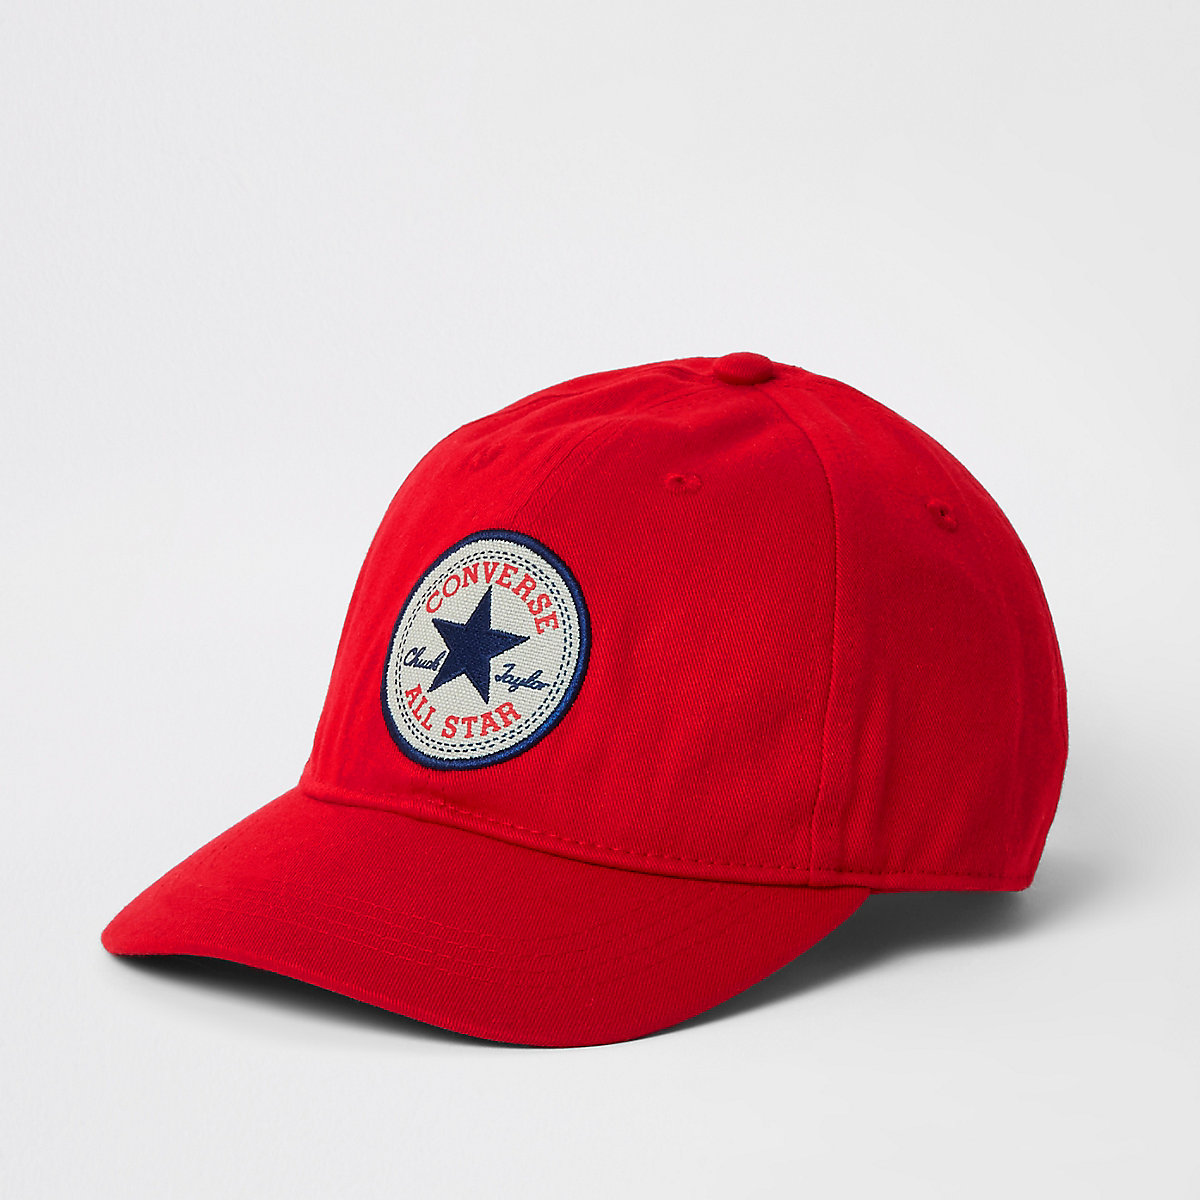 Kids red Converse cap - Hats - Accessories - boys 5d04f494d13